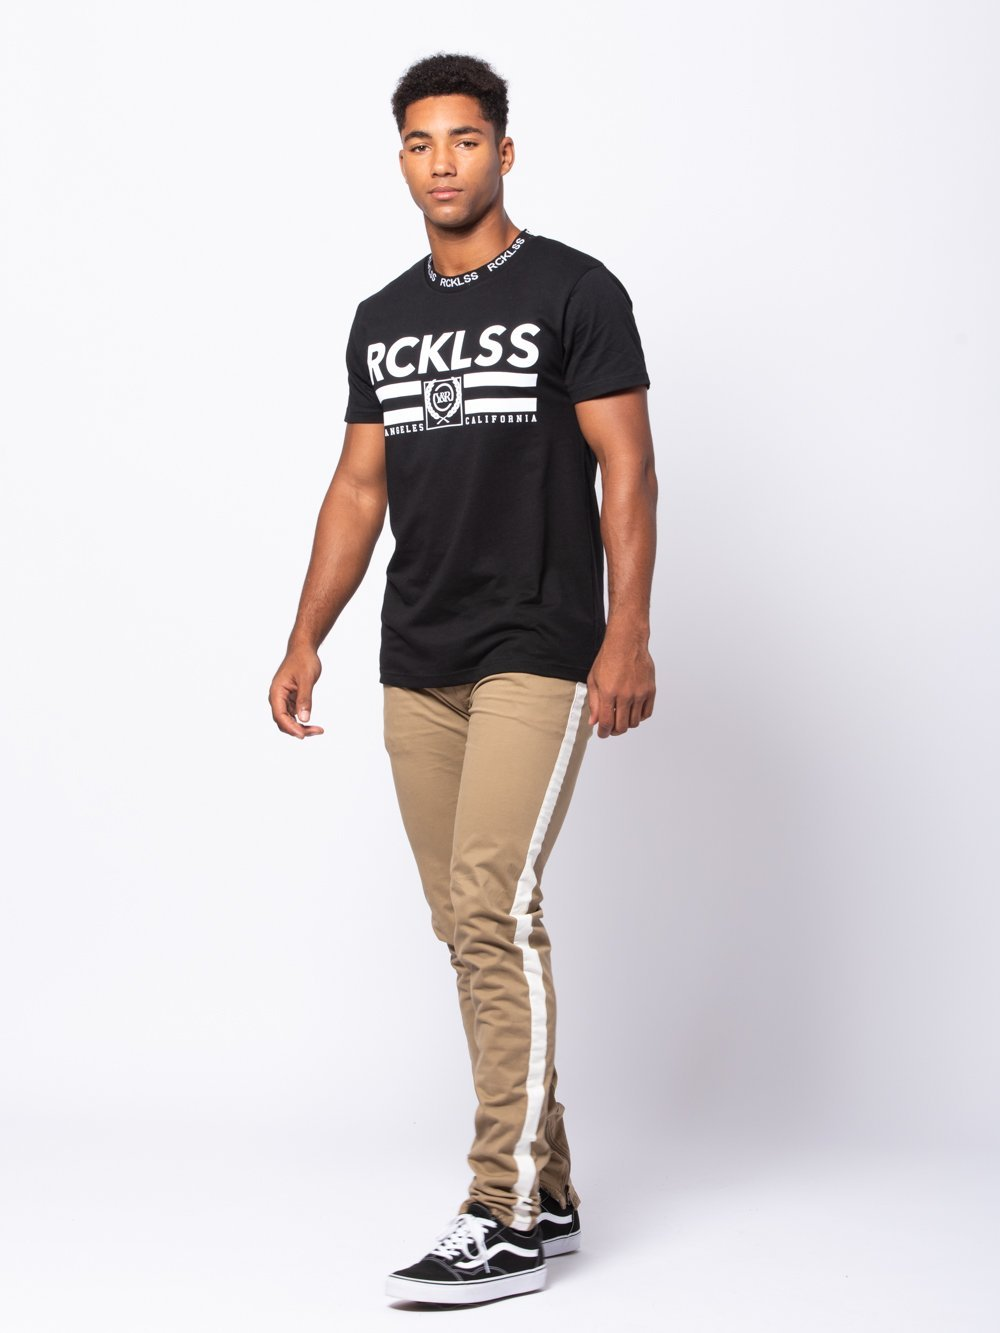 Young and Reckless Mens - Tees - Graphic Tee Cutlass Tee - Black